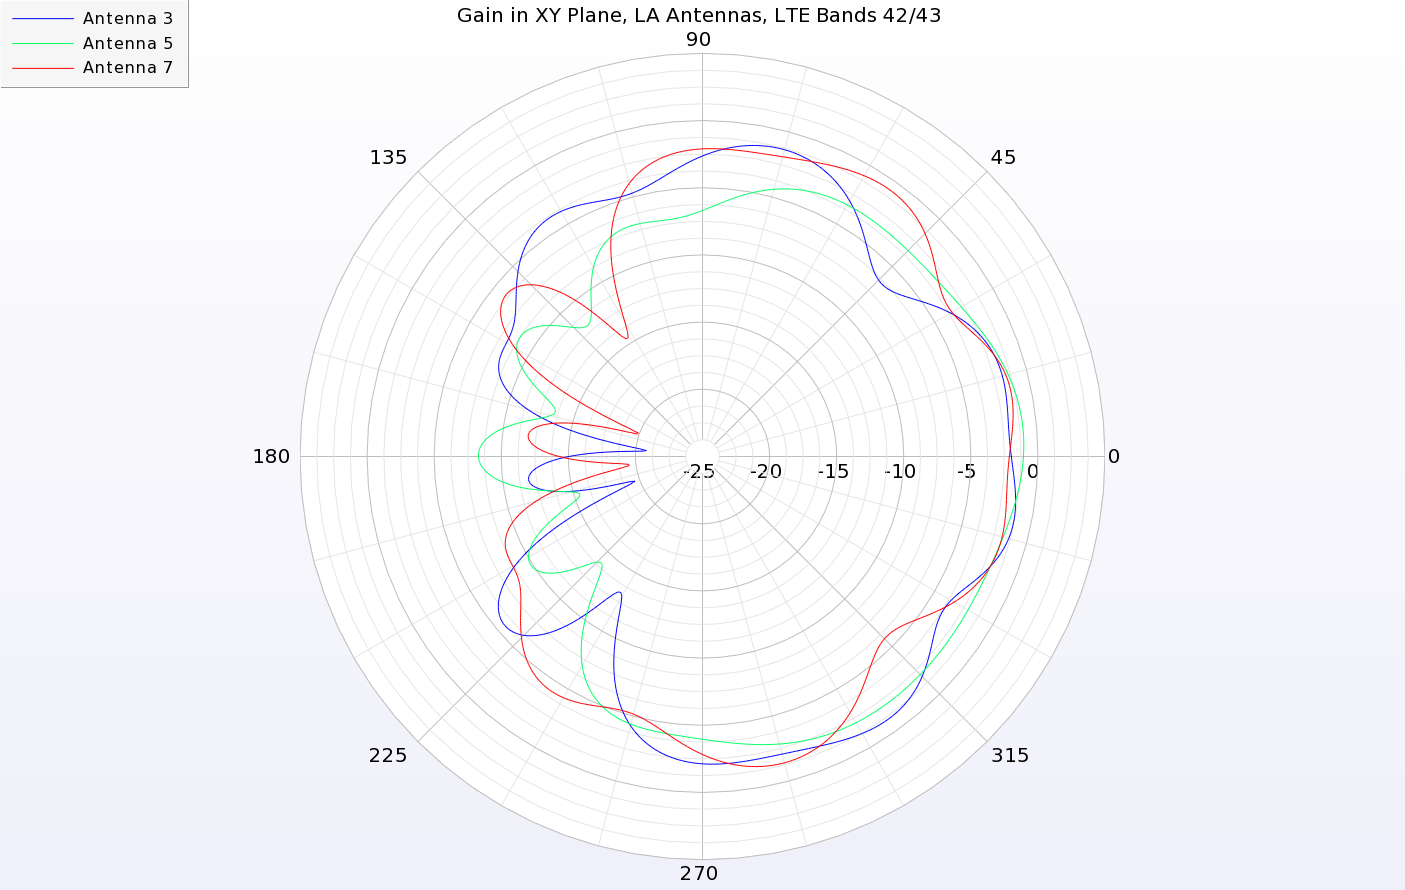 Figure 11: The LA antennas have peak gain toward the outer edge of the device. In this case, the antennas on the right side of the device are shown with peak gain in the +X direction.